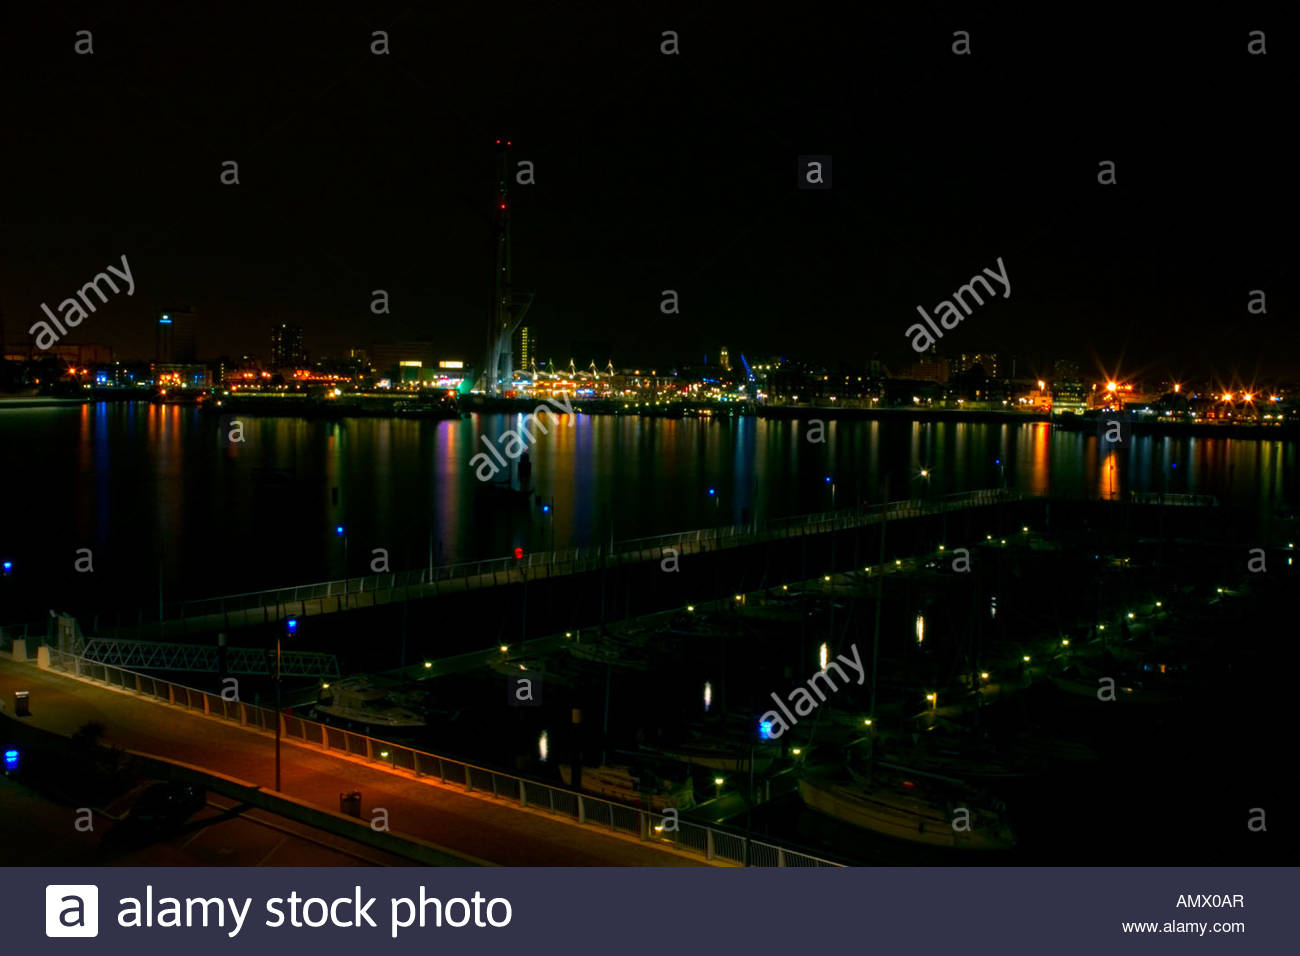 Looking at the water and lights across Portsmouth Harbour to Gun Wharf Quays from Gosport Hampshire UK at night, Stock Photo